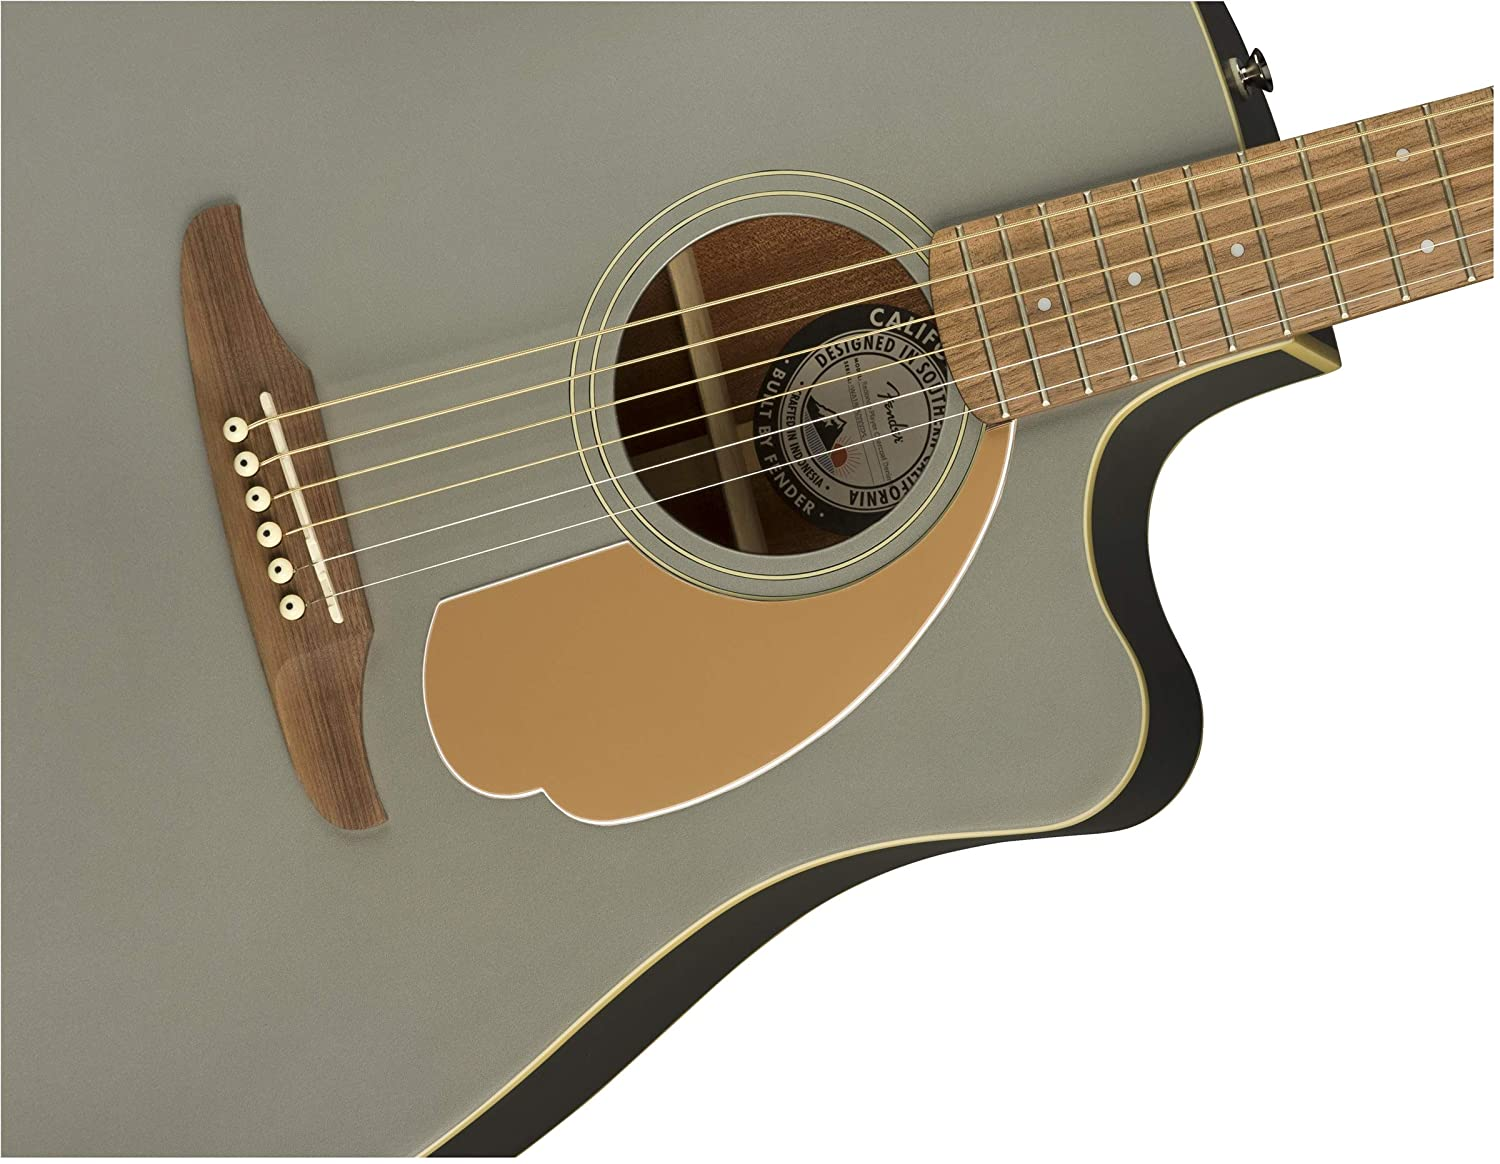 Full 970713543 Right Fender 6 String Acoustic-Electric Guitar